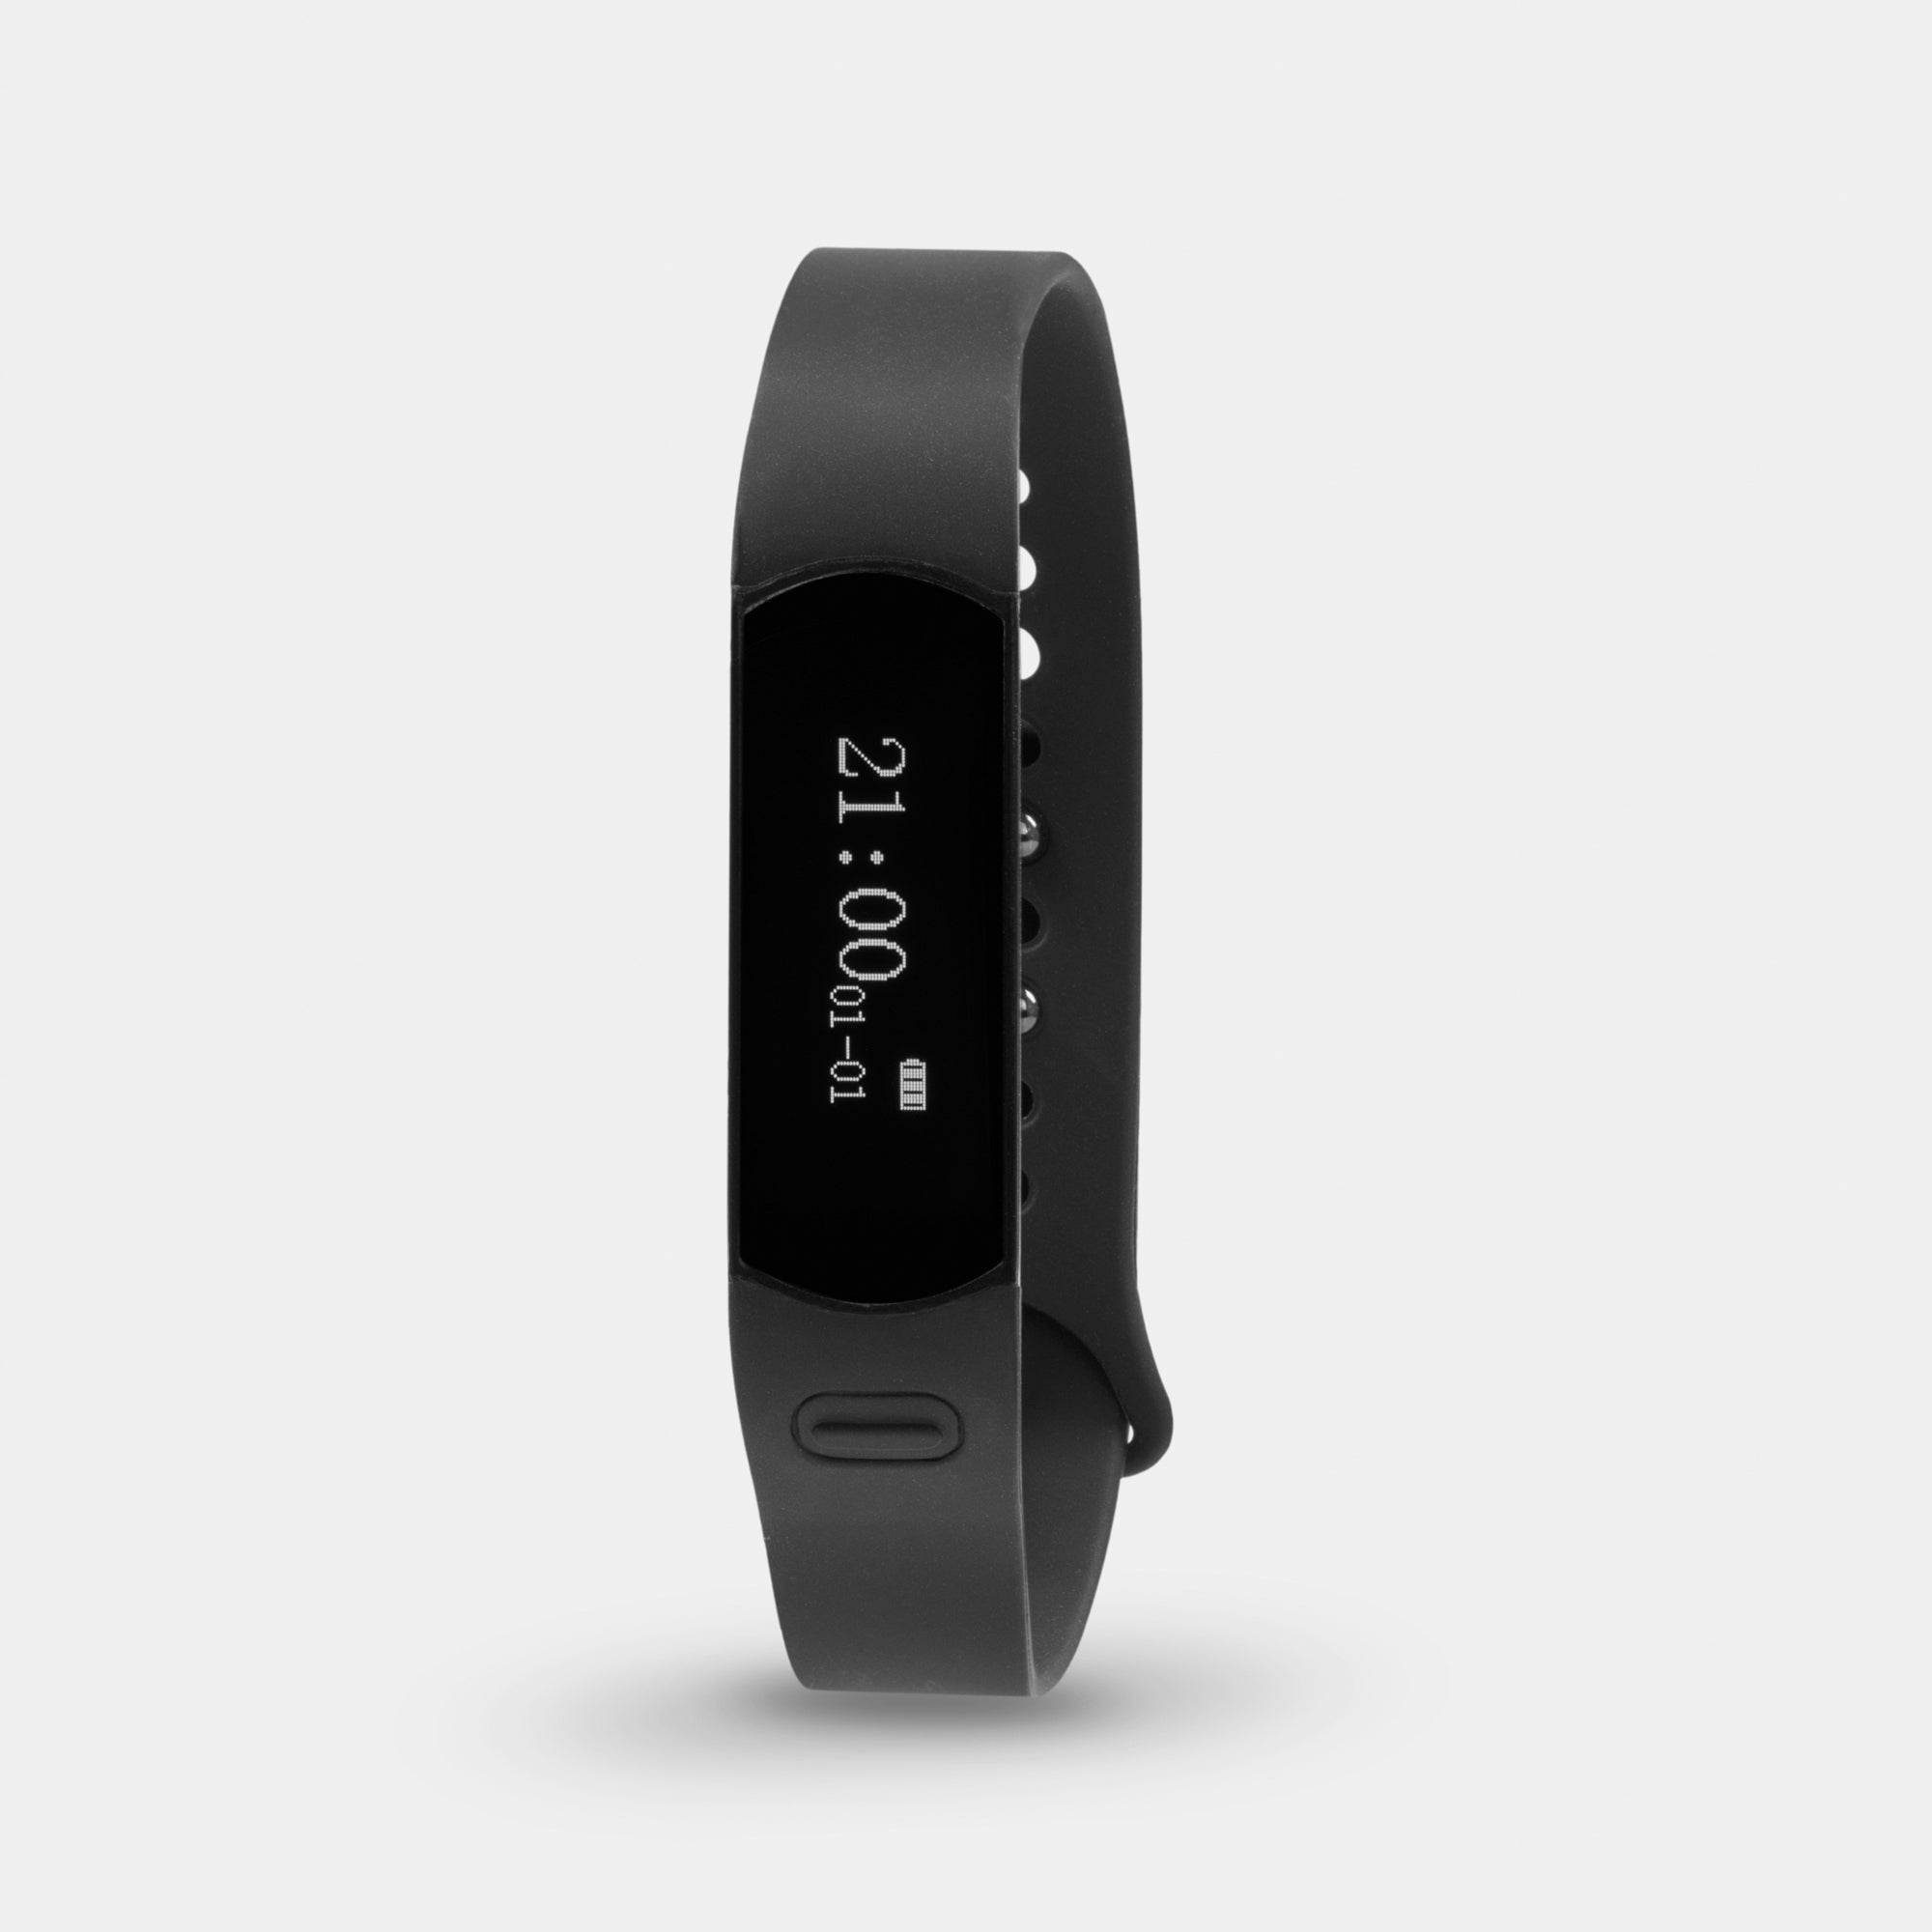 everlast activity tracker instructions